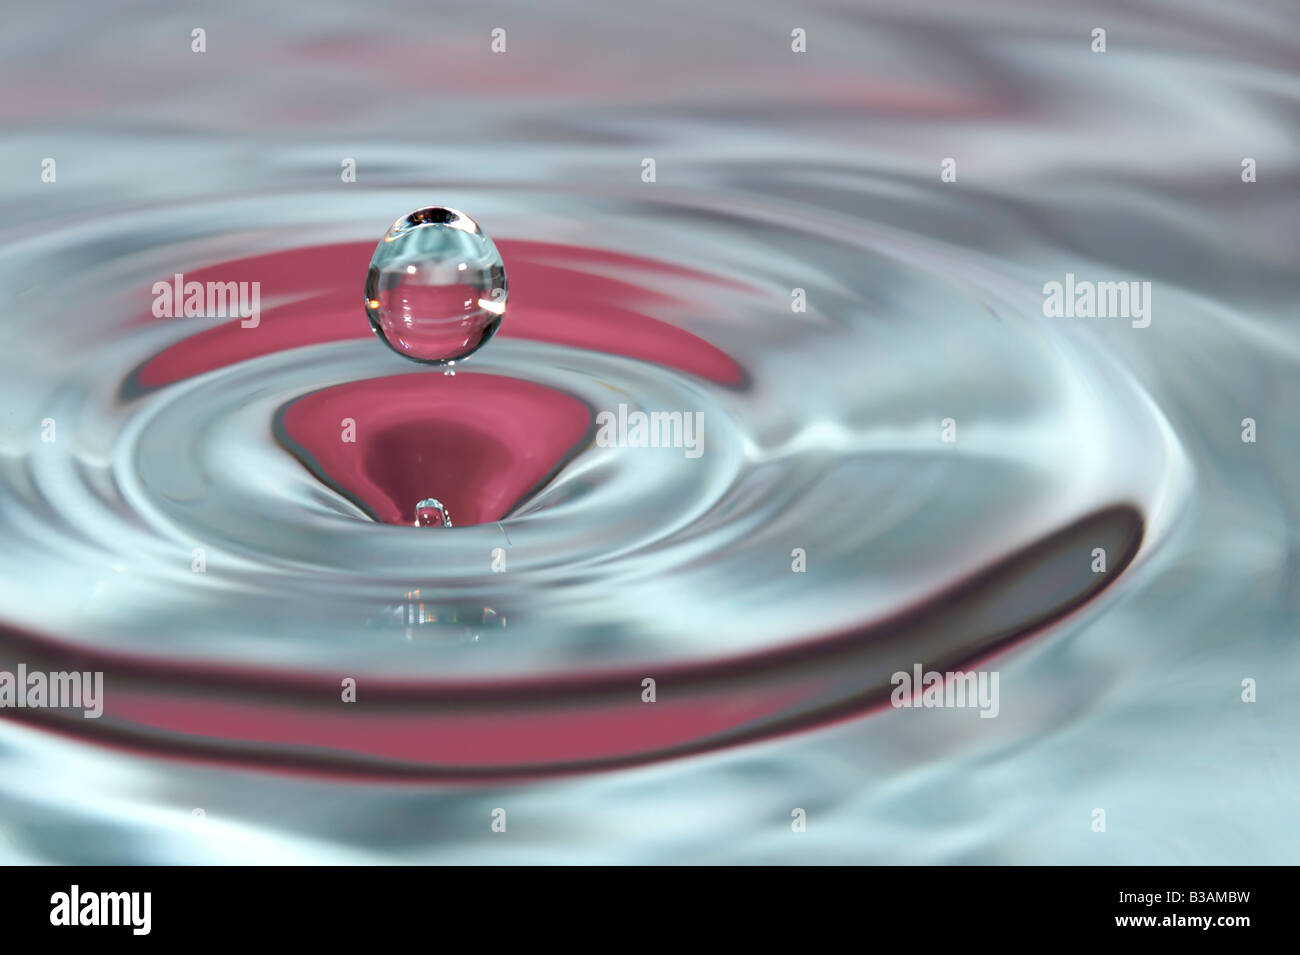 A water droplet bounces in the air after splashing into water and making ripples - Stock Image